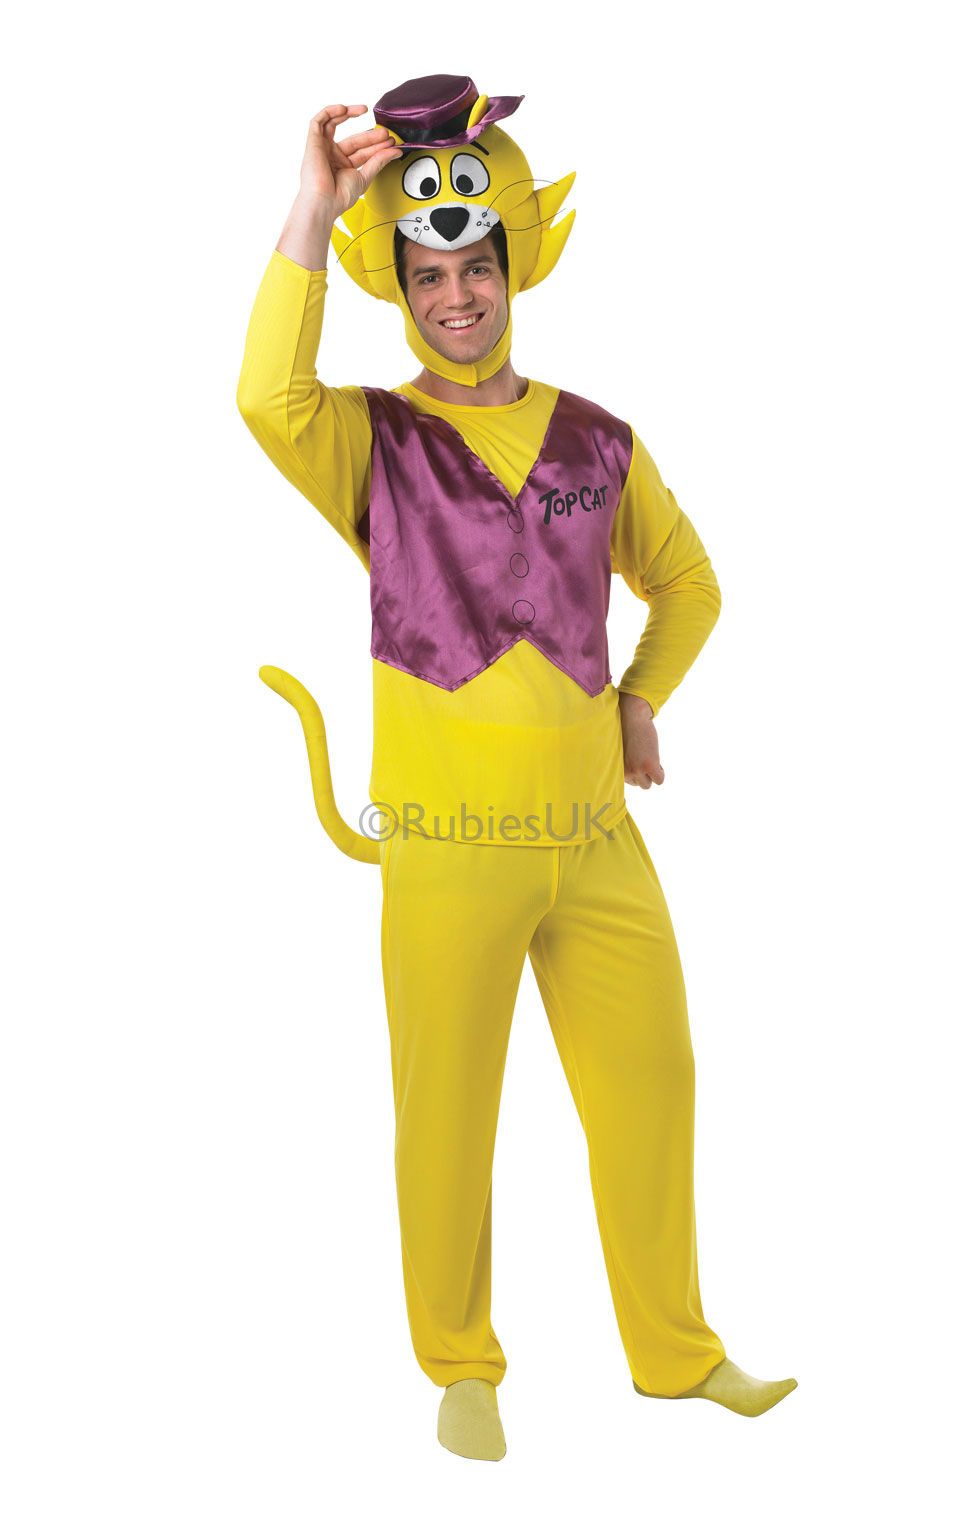 Cartoon Characters Outfits : Official top cat costume cartoon characters tv